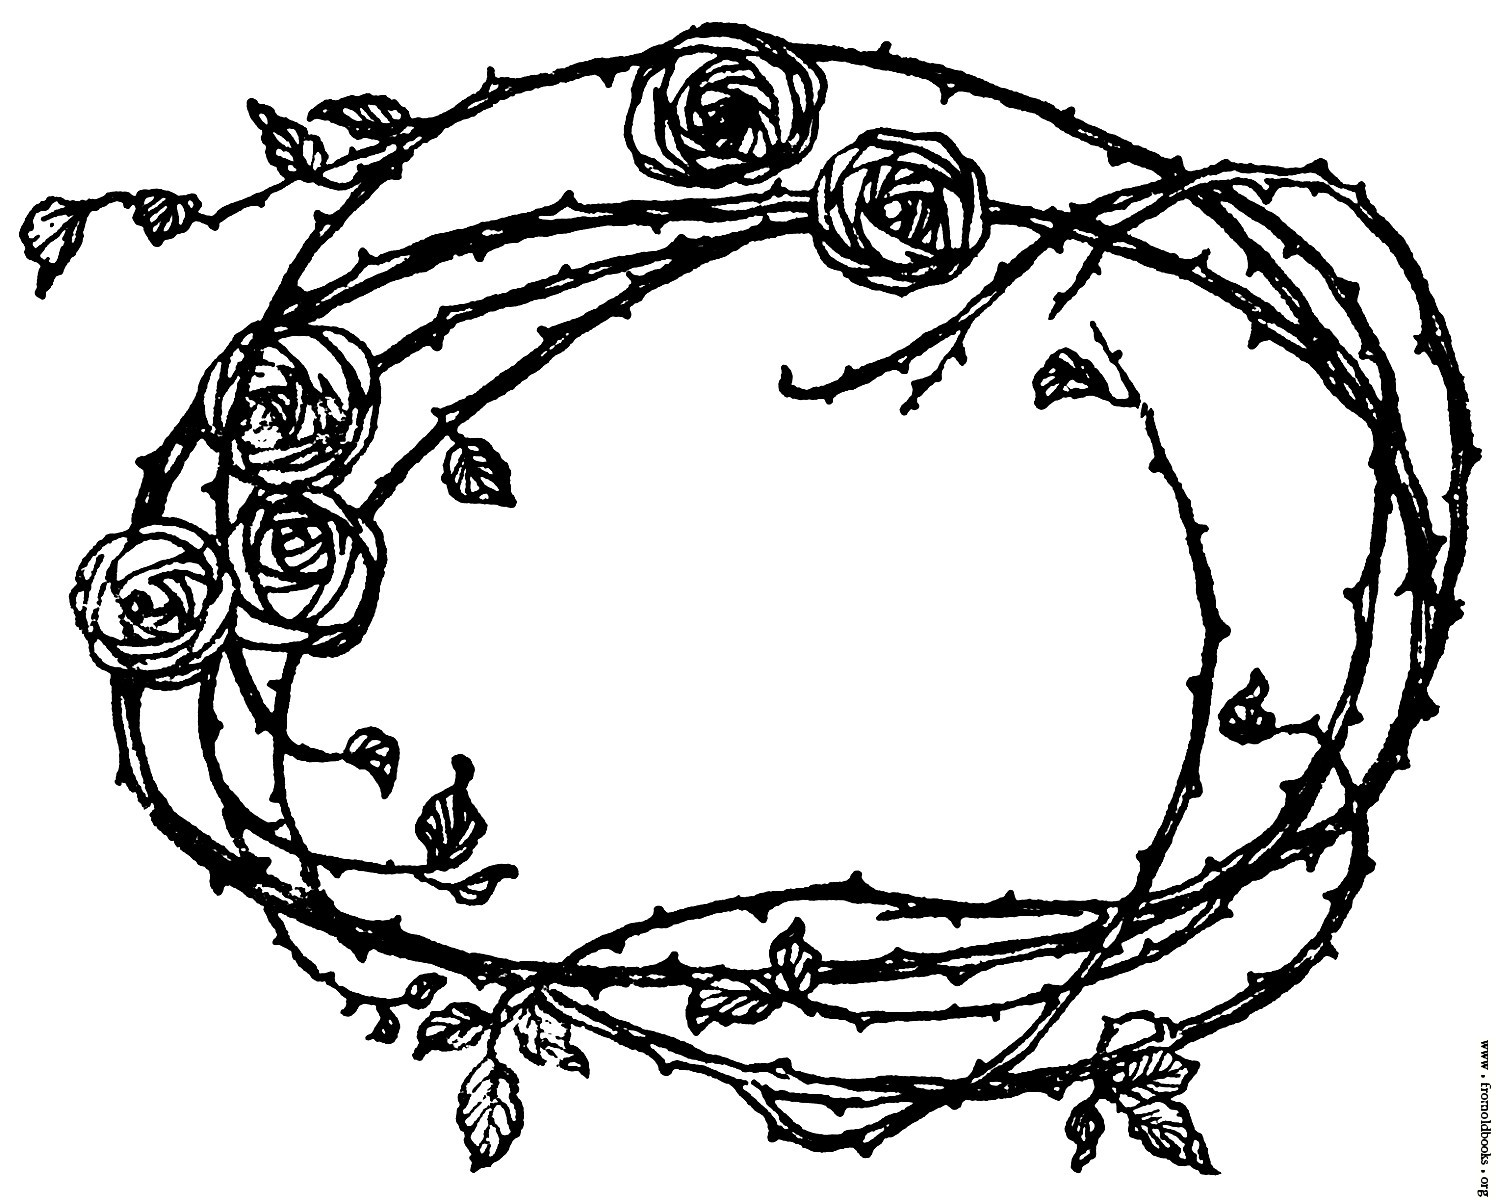 1496x1200 Border Of Roses And Thorns